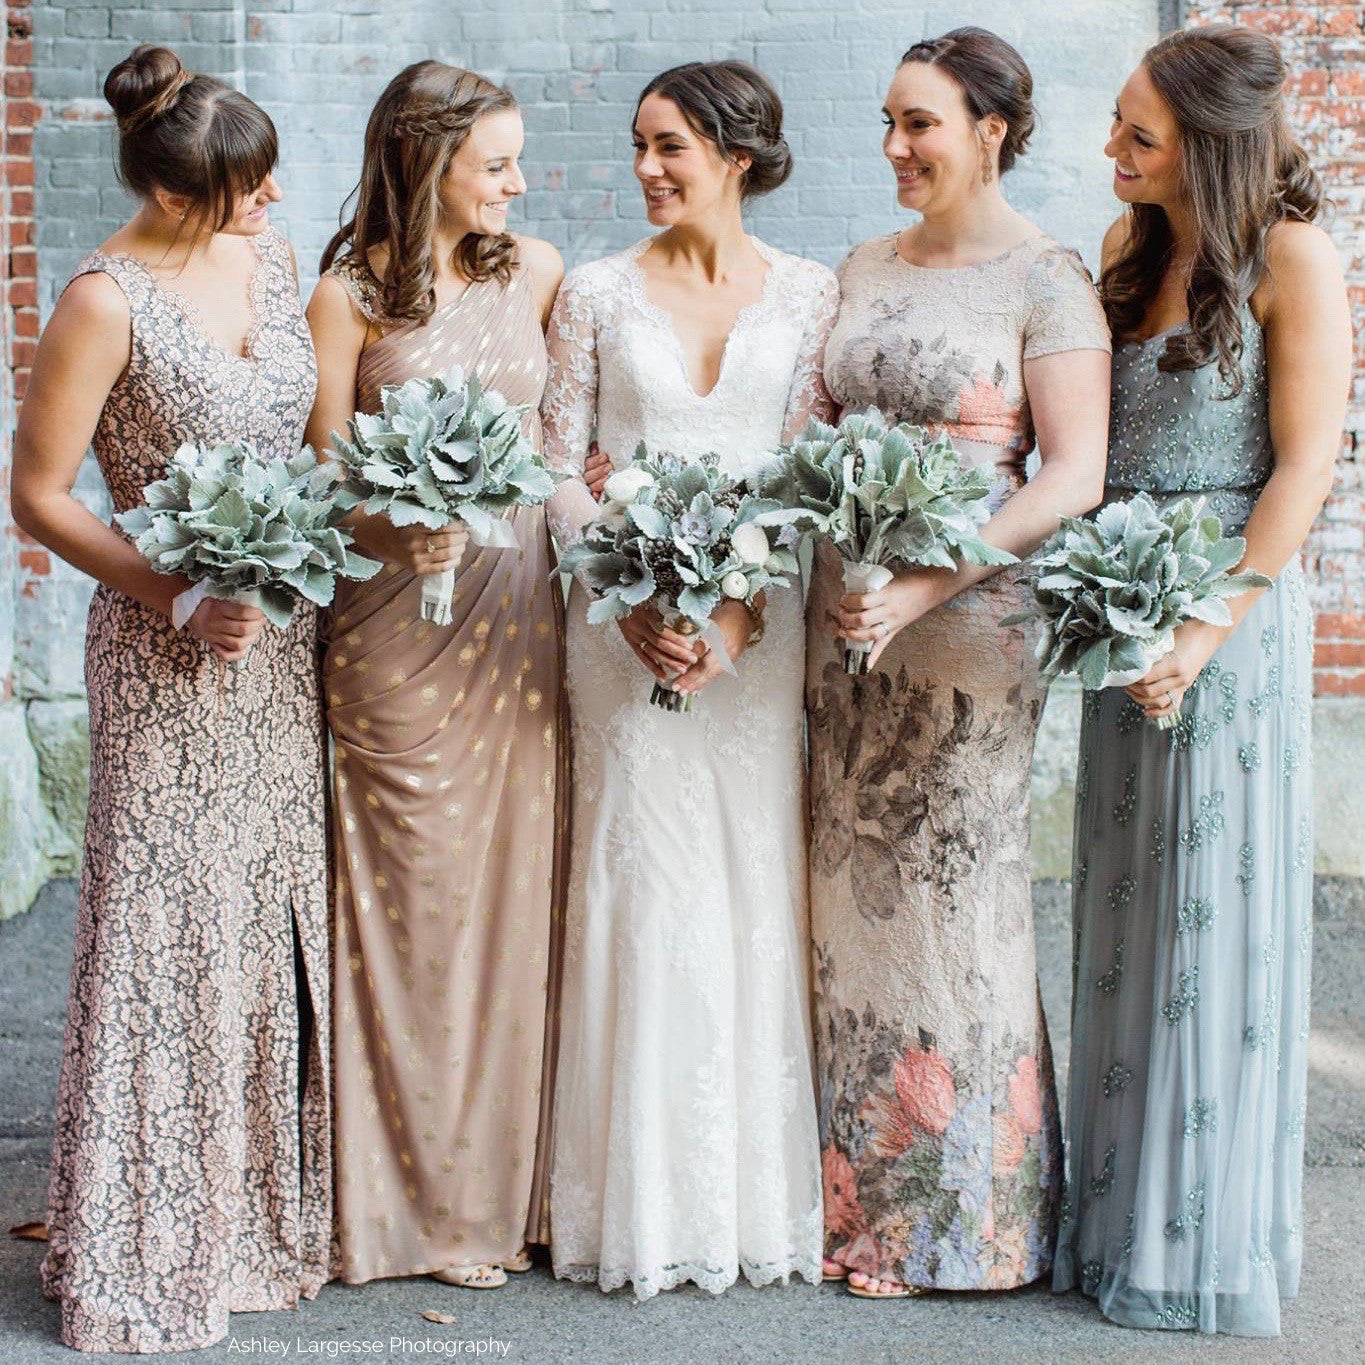 Silver grey bridal party bouquets of dusty miller and silver brunia.